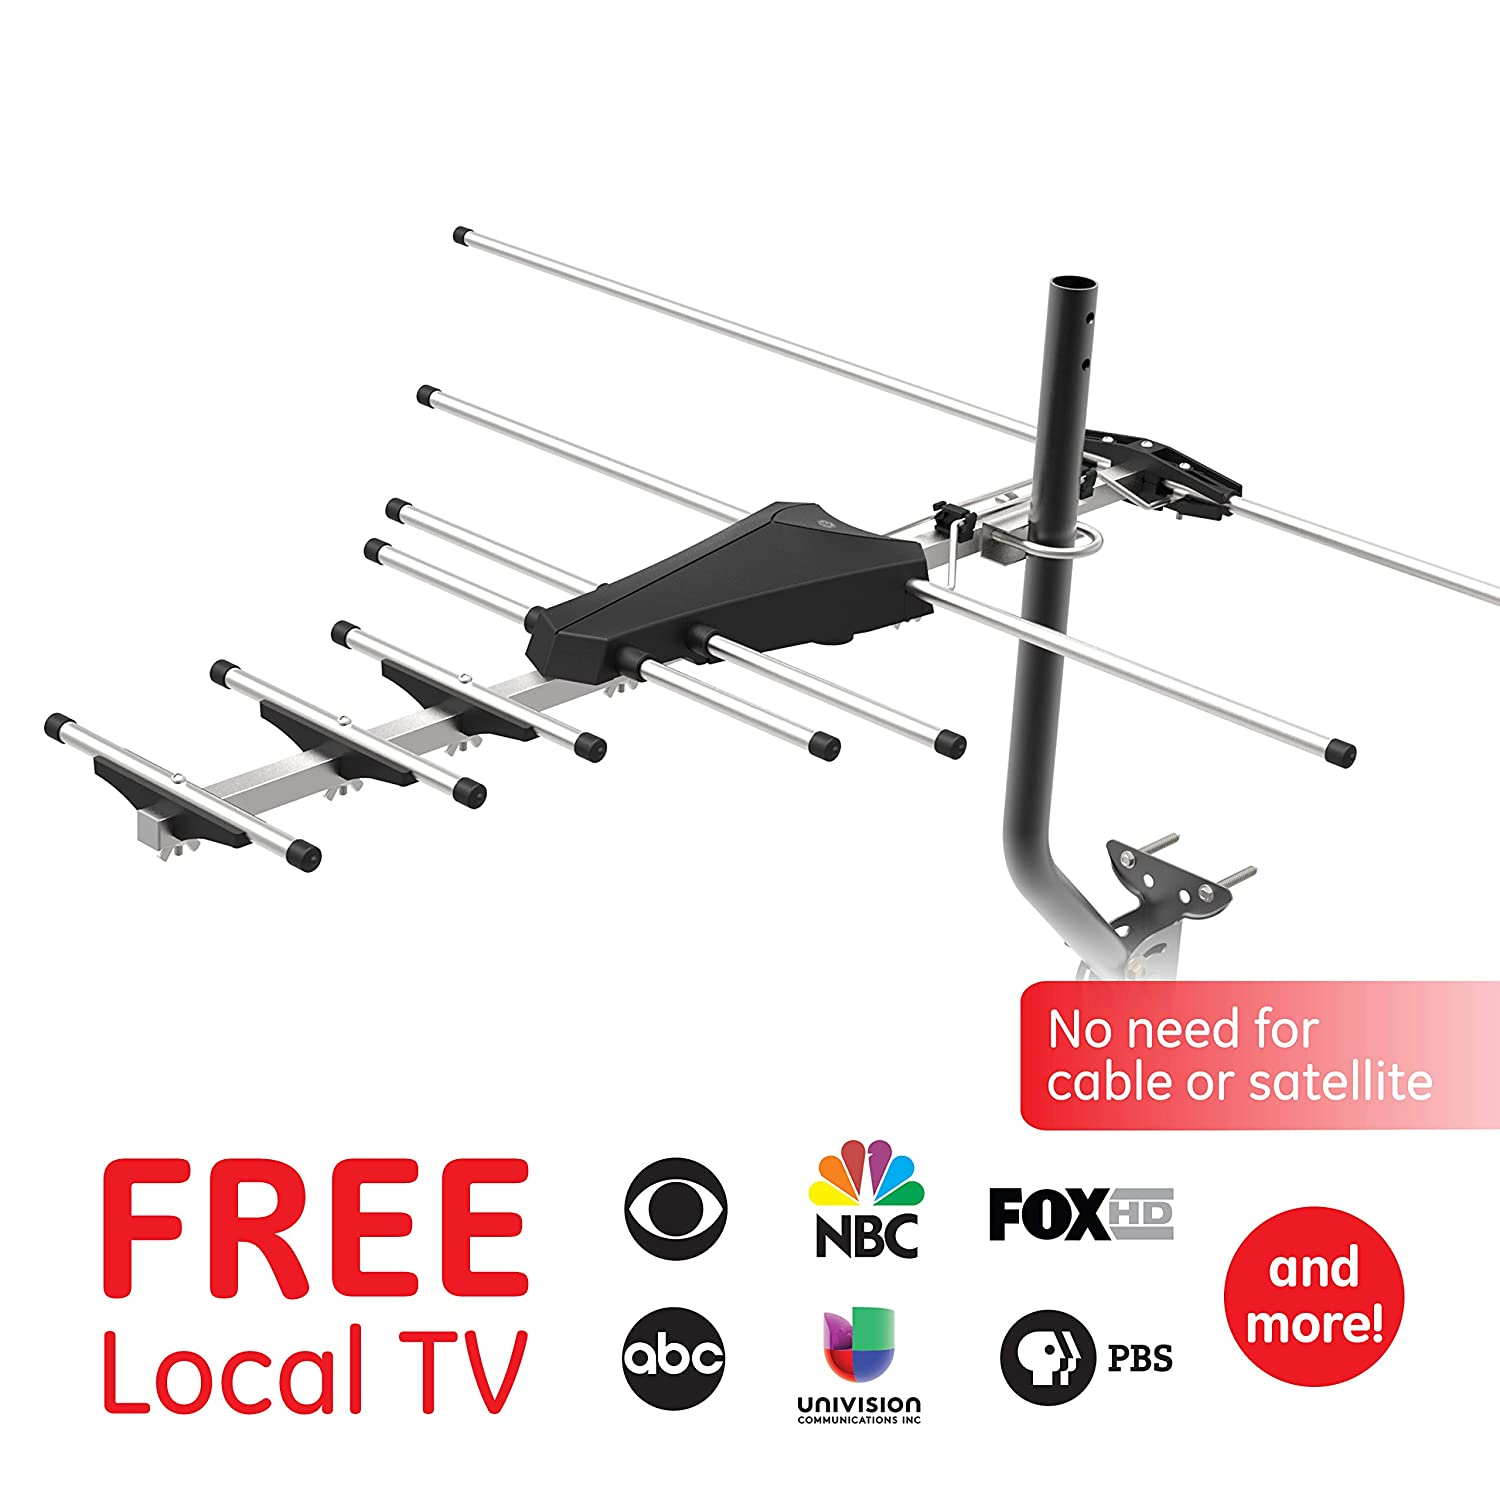 Ge Pro Outdoor Yagi Tv Antenna Hdtv Attic Wiring Diagram Compact Design Long Range Digital Directional